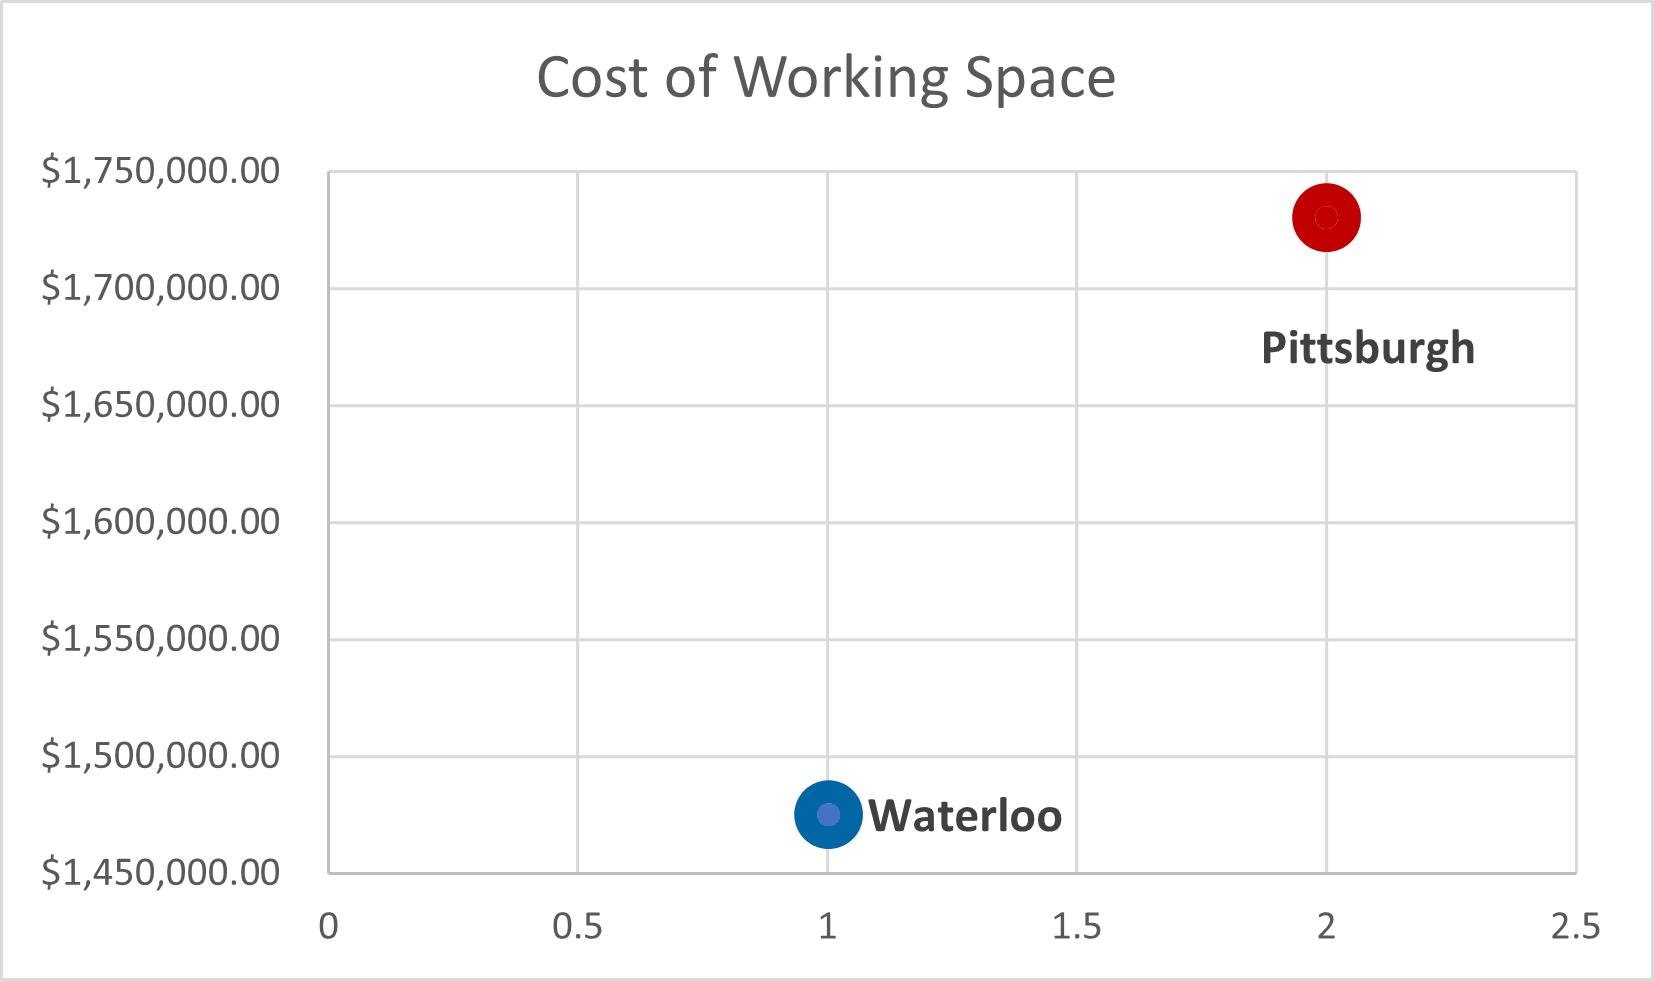 Waterloo/Pittsburgh office rent costs (in millions) - average rent times 75,000 square feet - Waterloo is $1.45 million Pittsburgh is $1.75 million